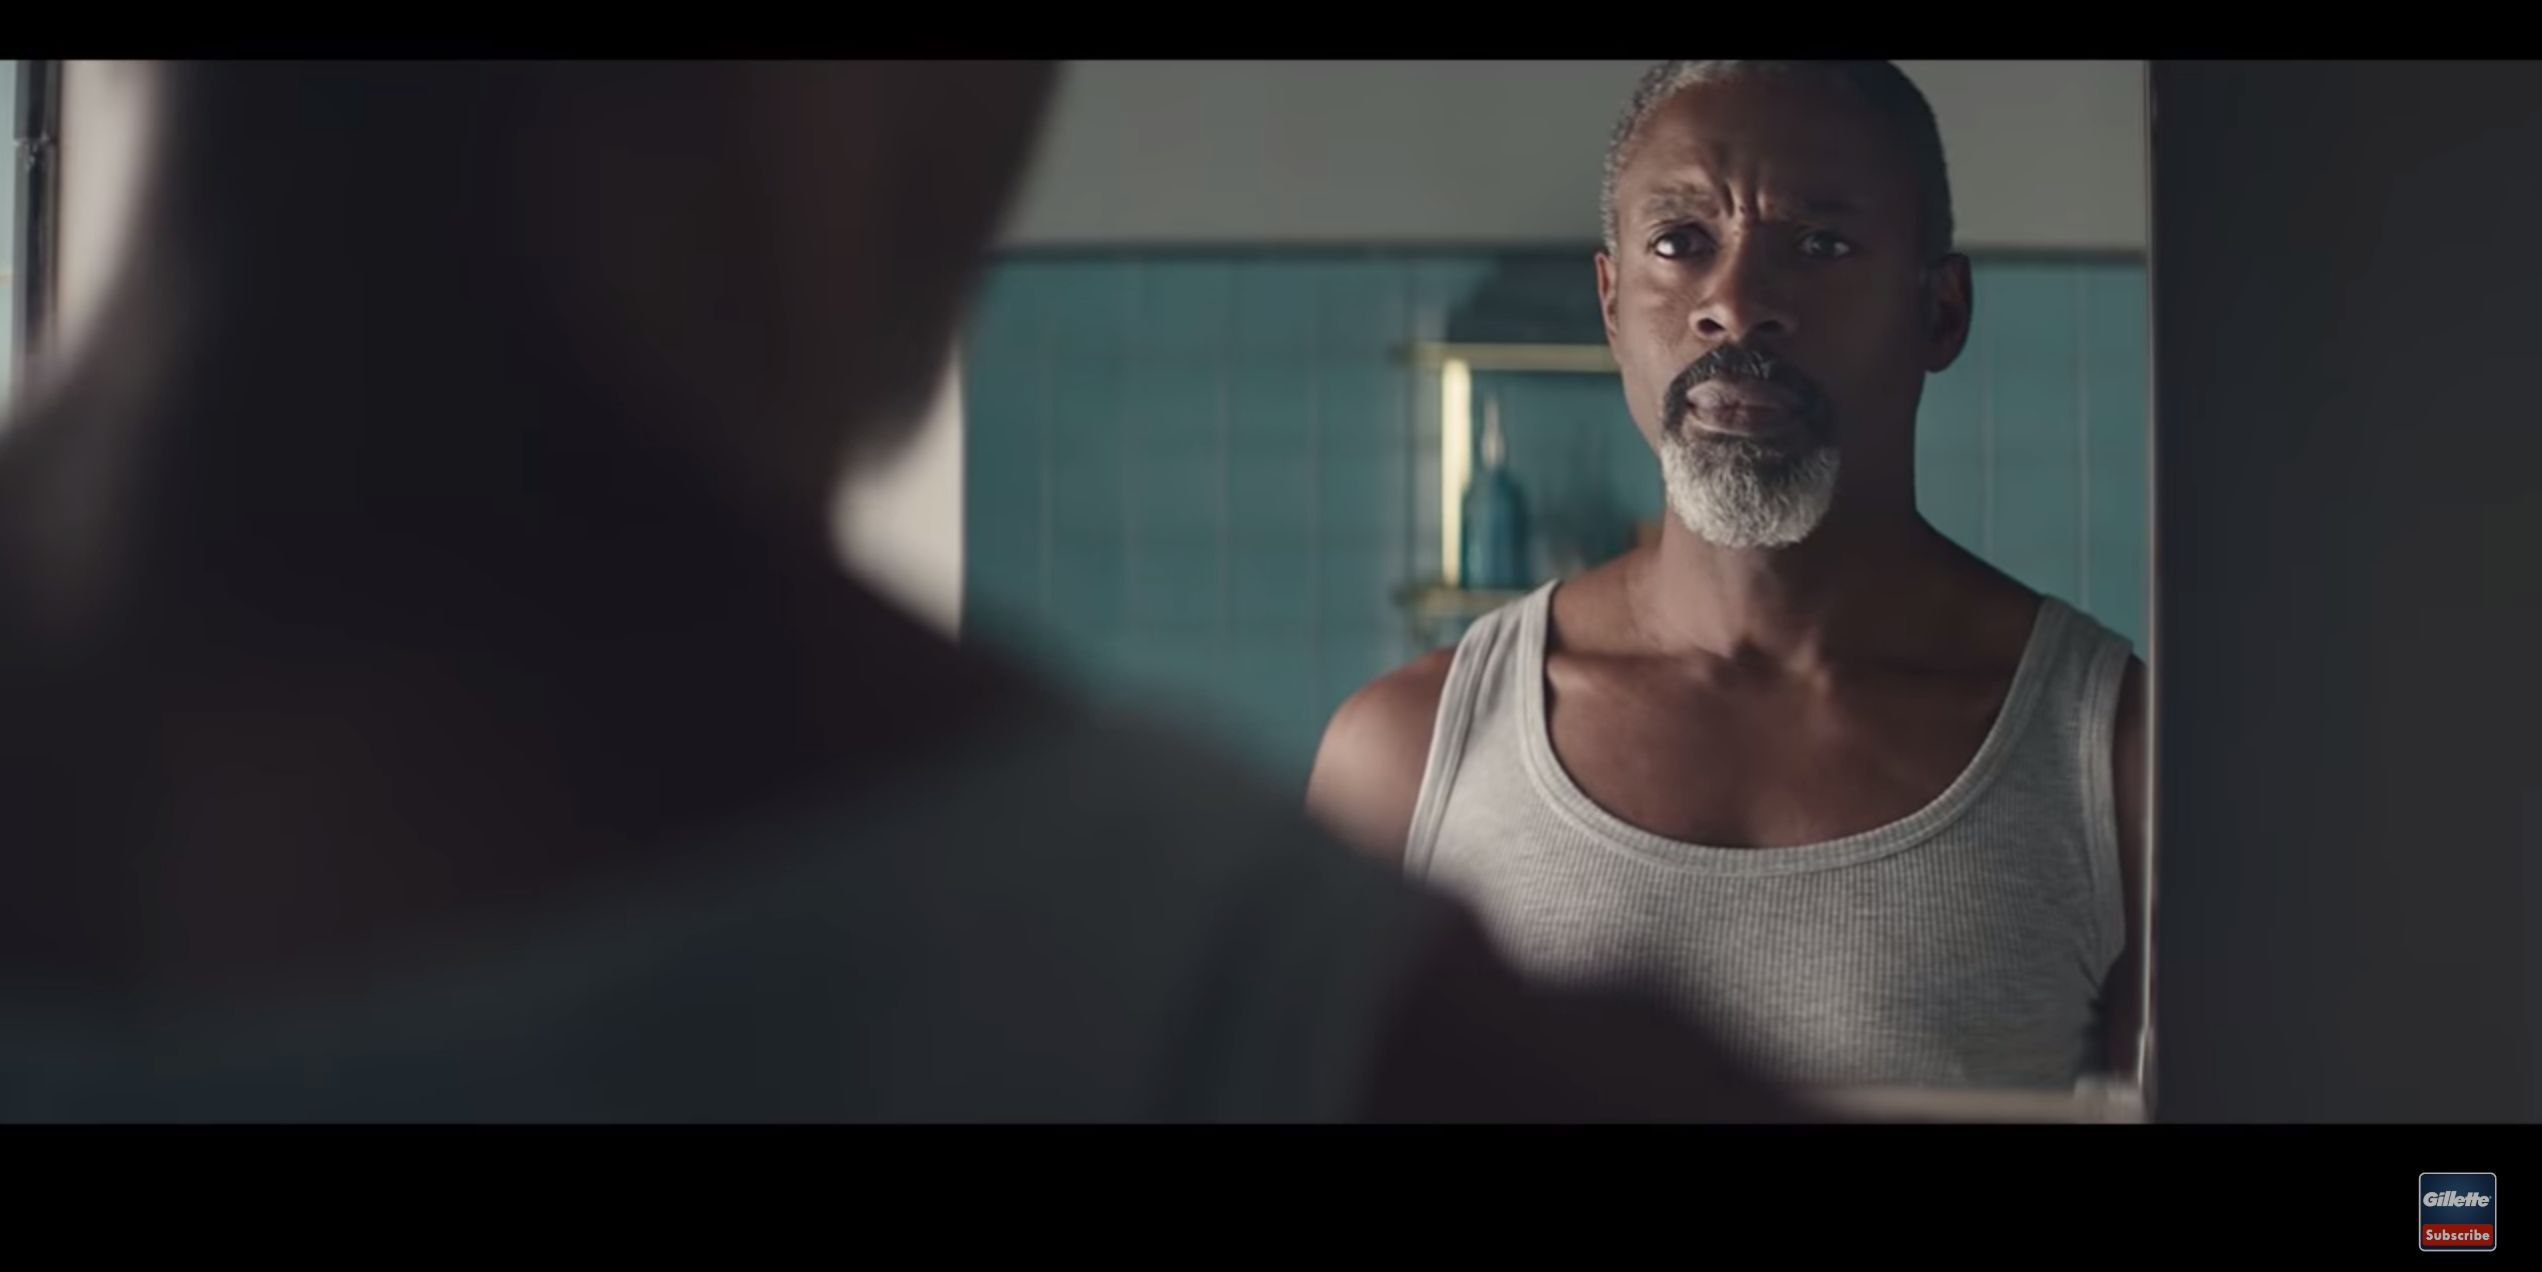 Gillette Faces Backlash For 'Me Too' Advert Asking: 'Is This The Best A Man Can